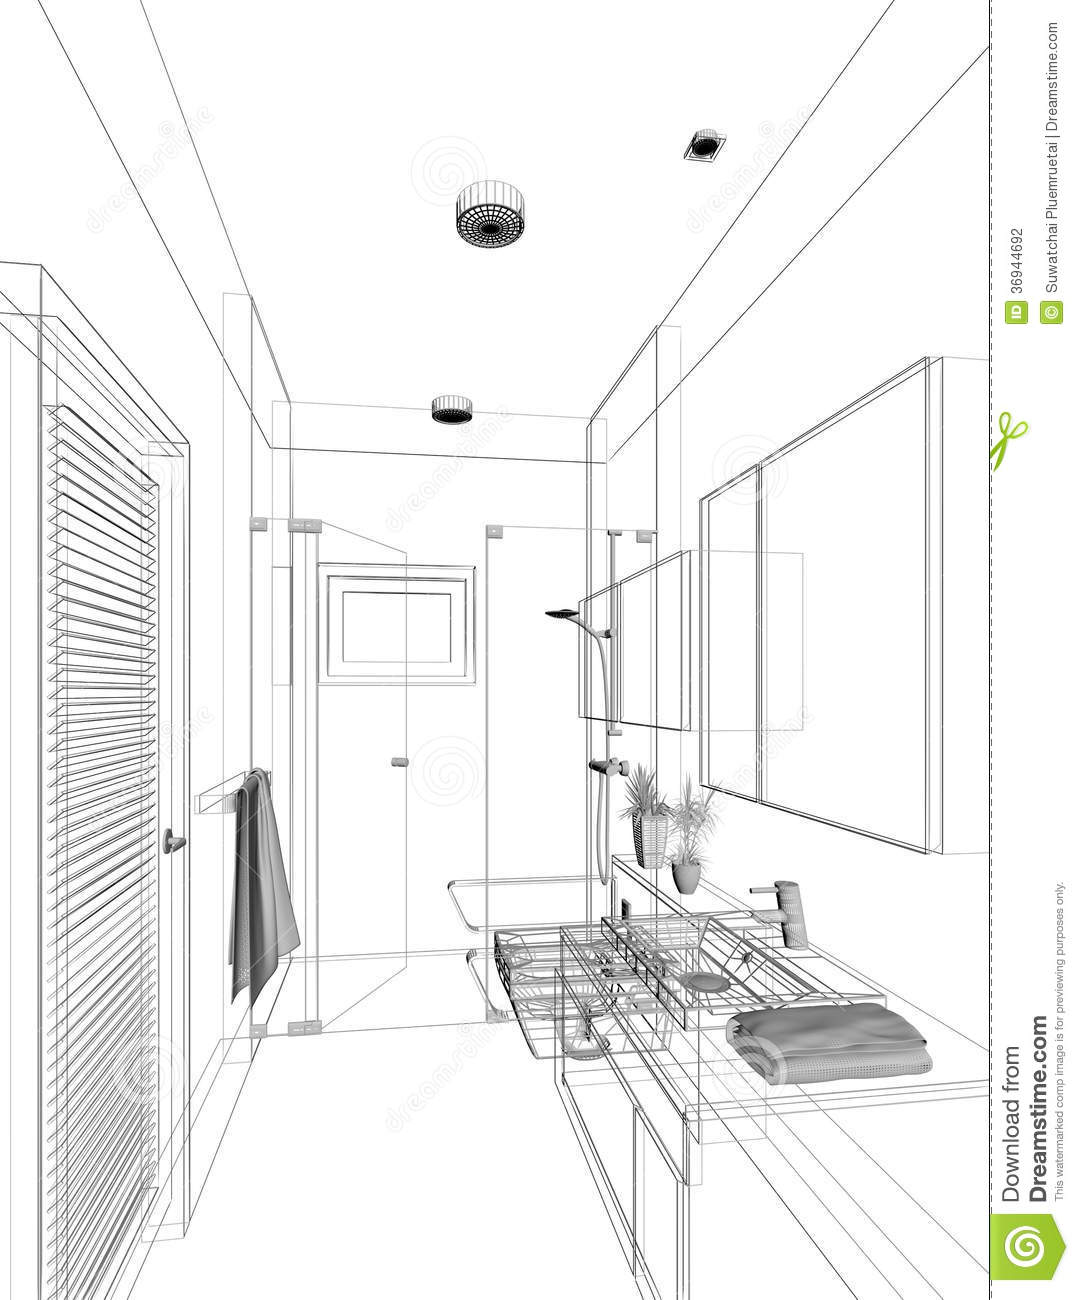 Sketch Design Of Interior Bathroom Stock Illustration